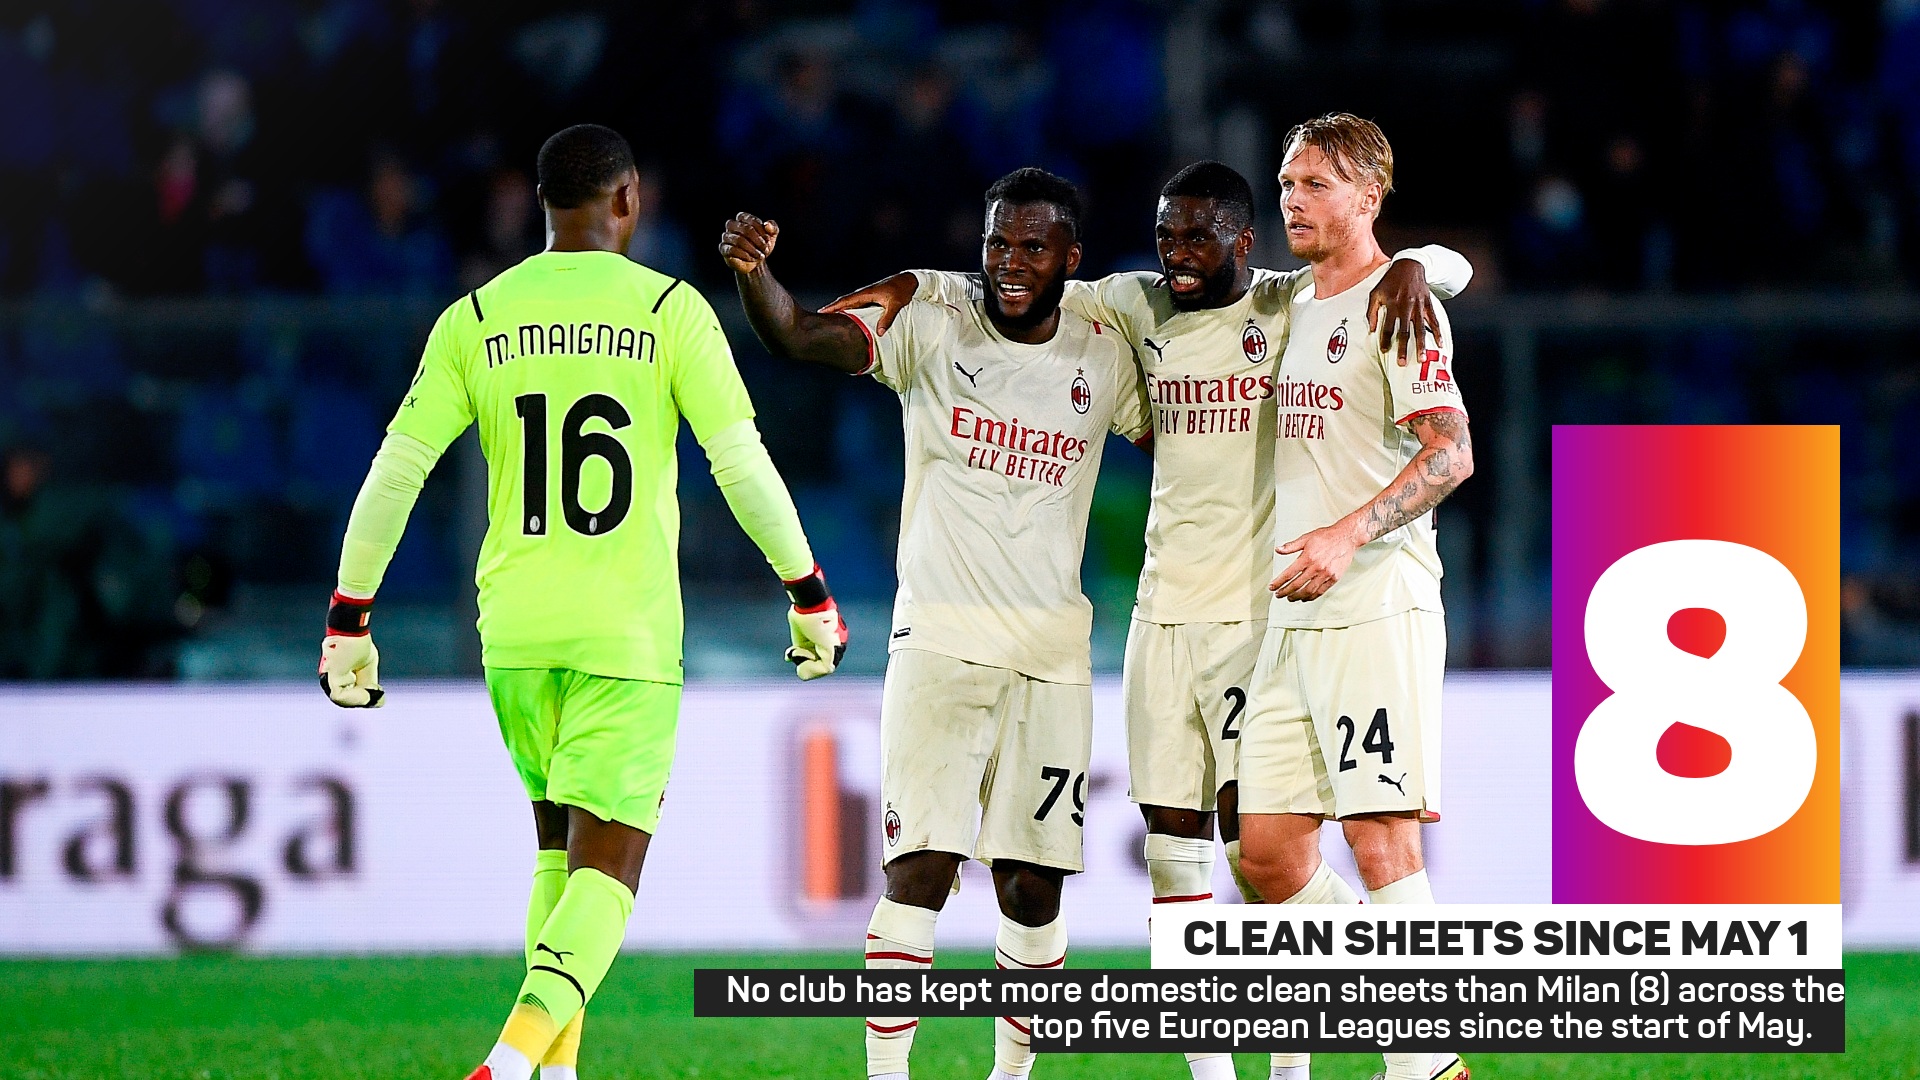 No club has kept more domestic clean sheets than Milan (8) across the top five European Leagues since the start of May.